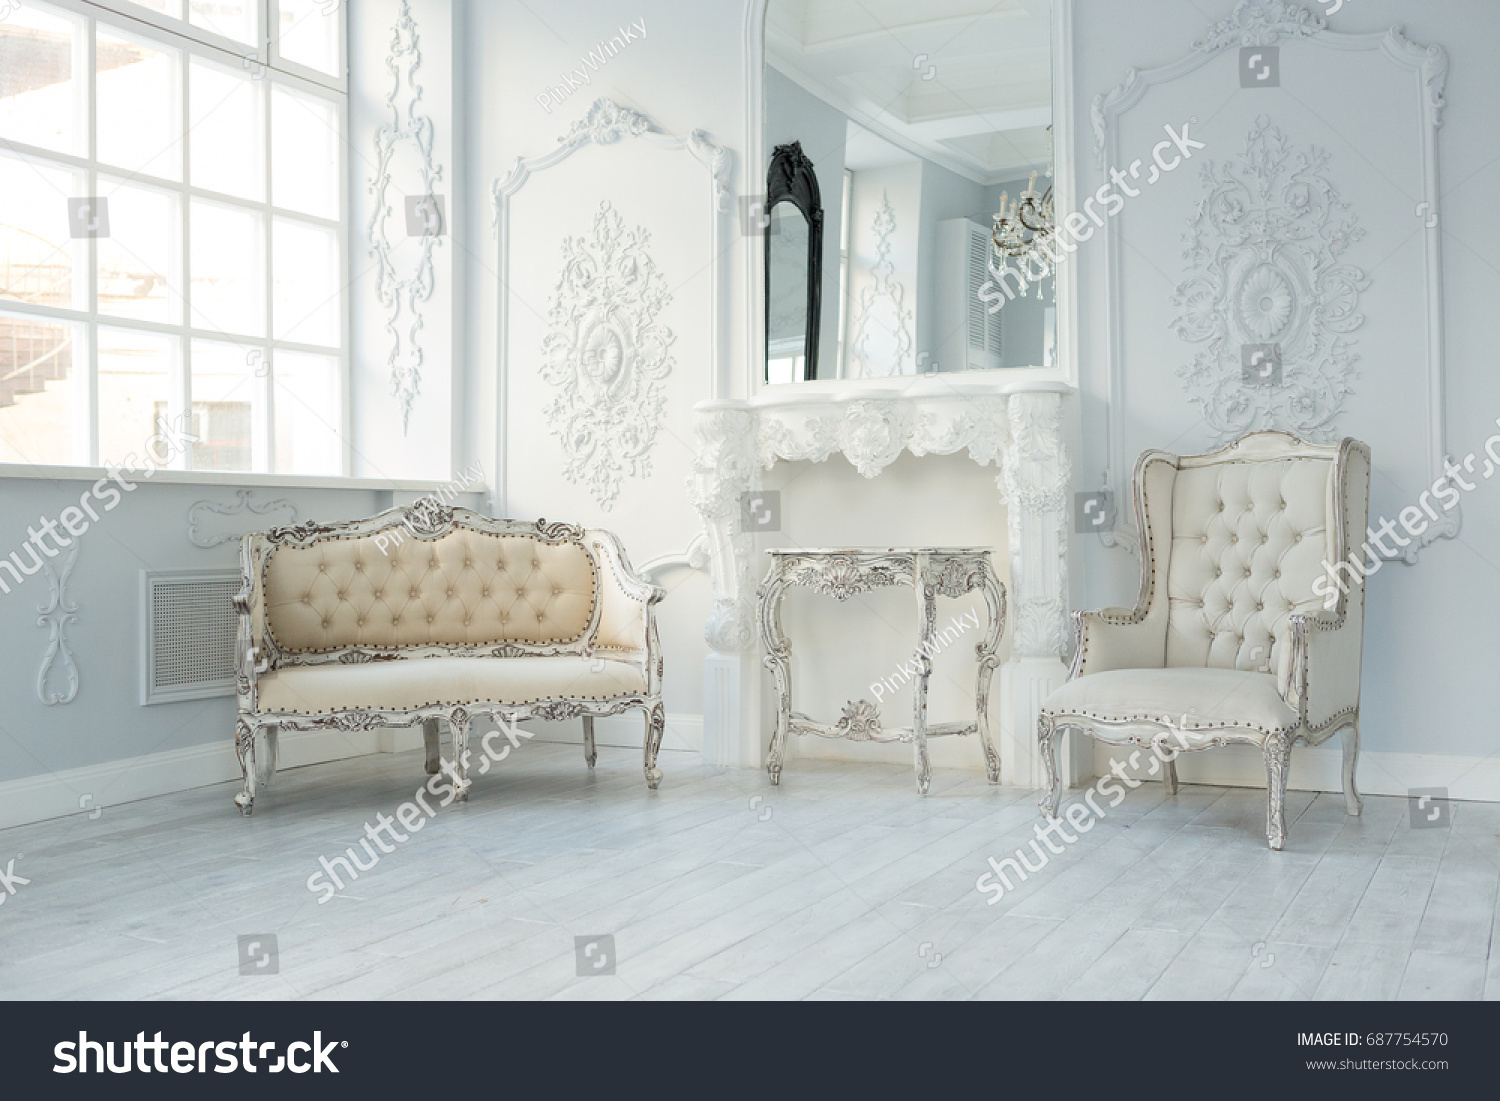 Luxury Rich Living Room Interior Design Stock Photo (Safe to Use ...